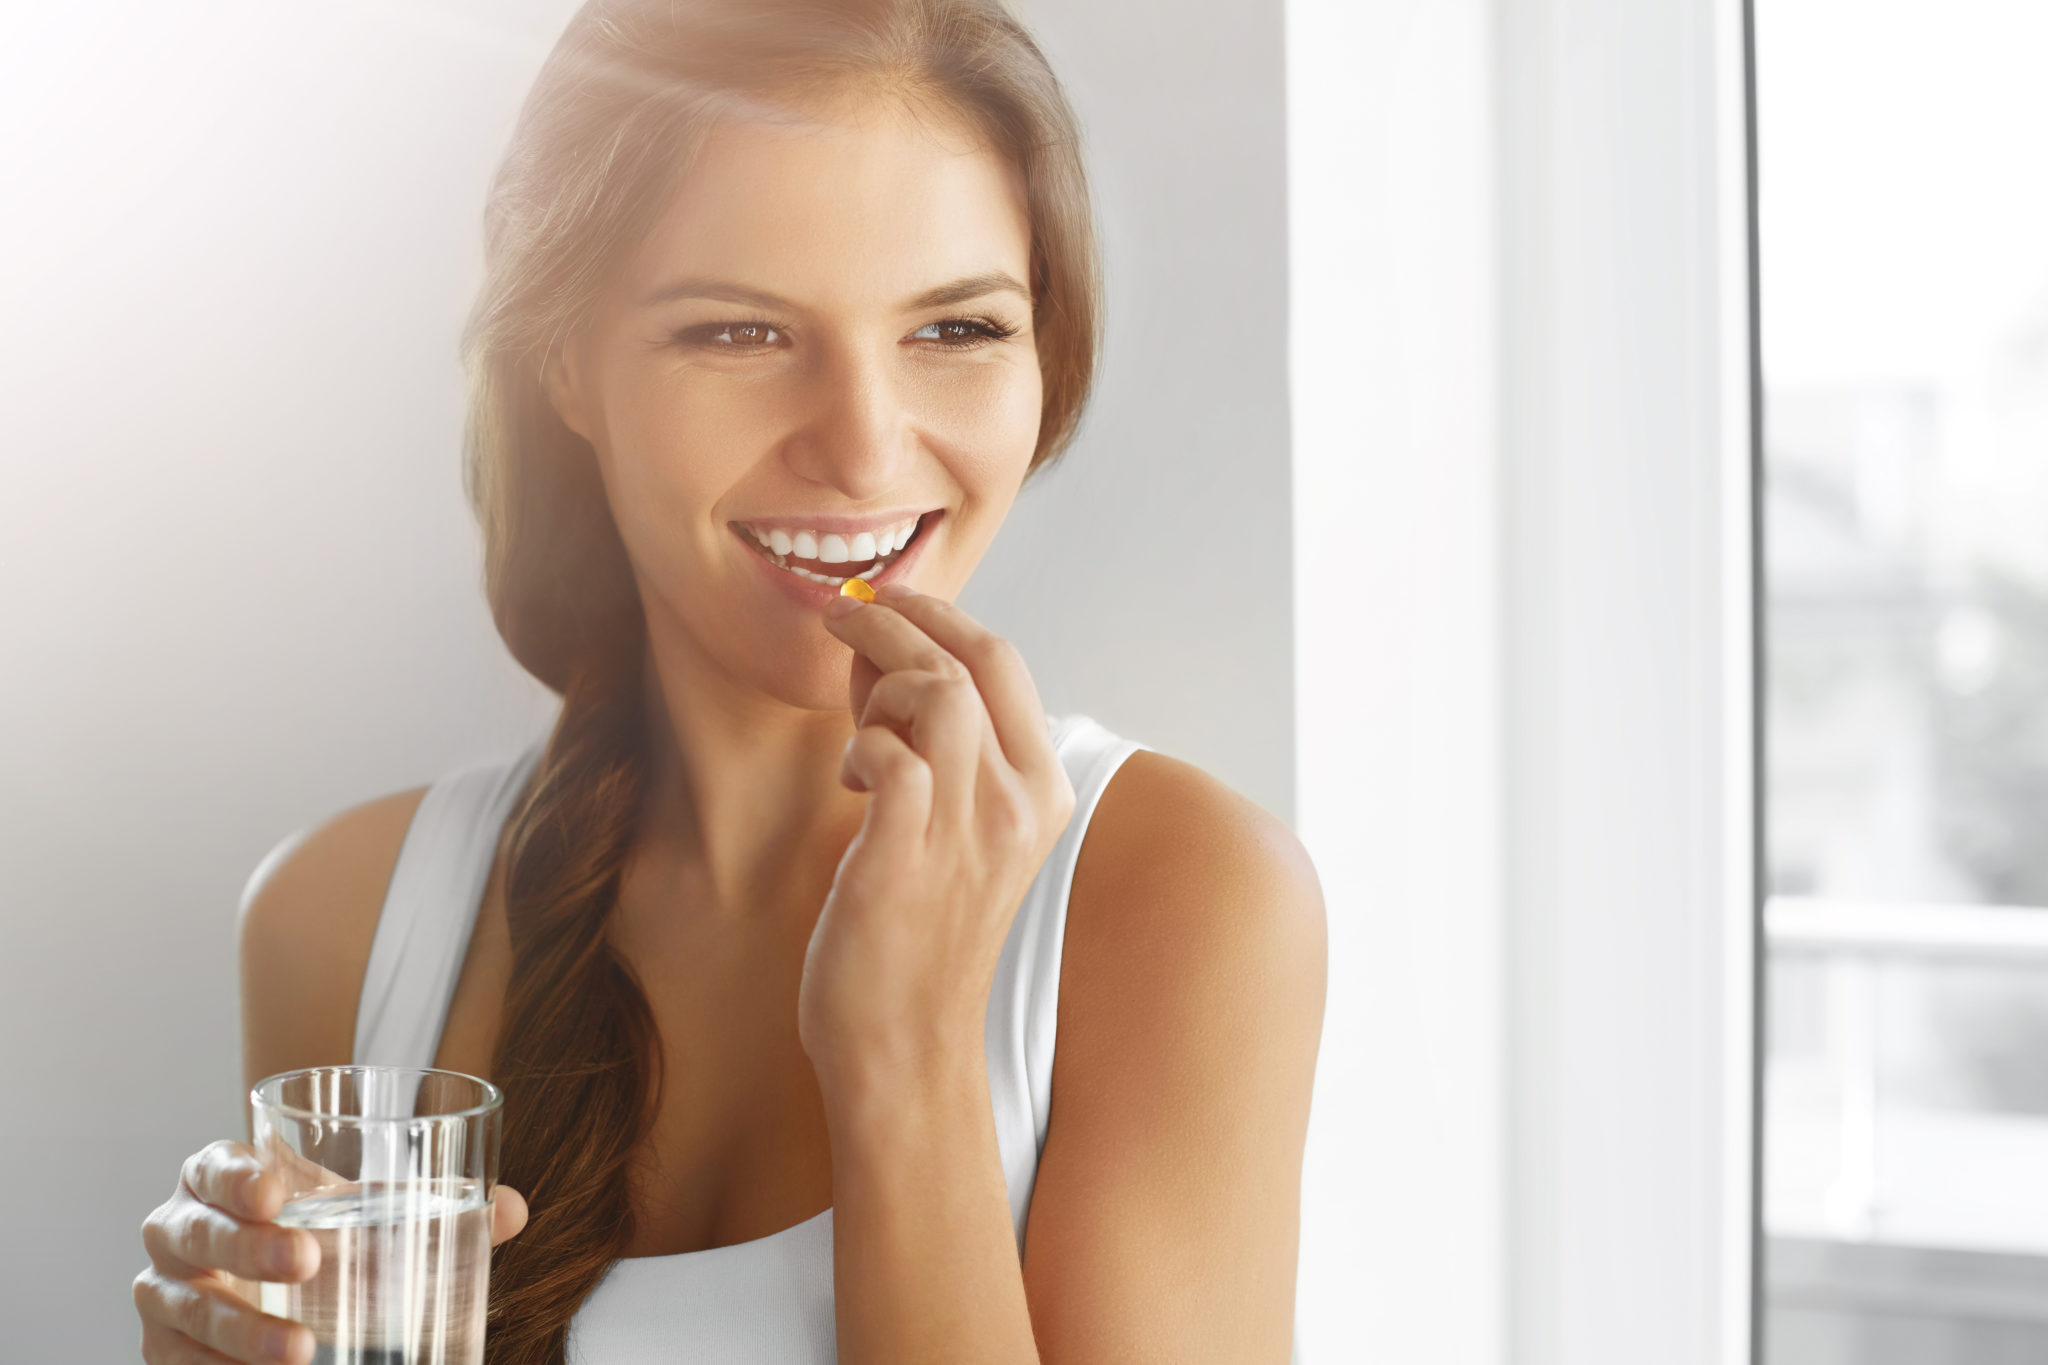 An attractive young woman taking multivitamin with a glass of water